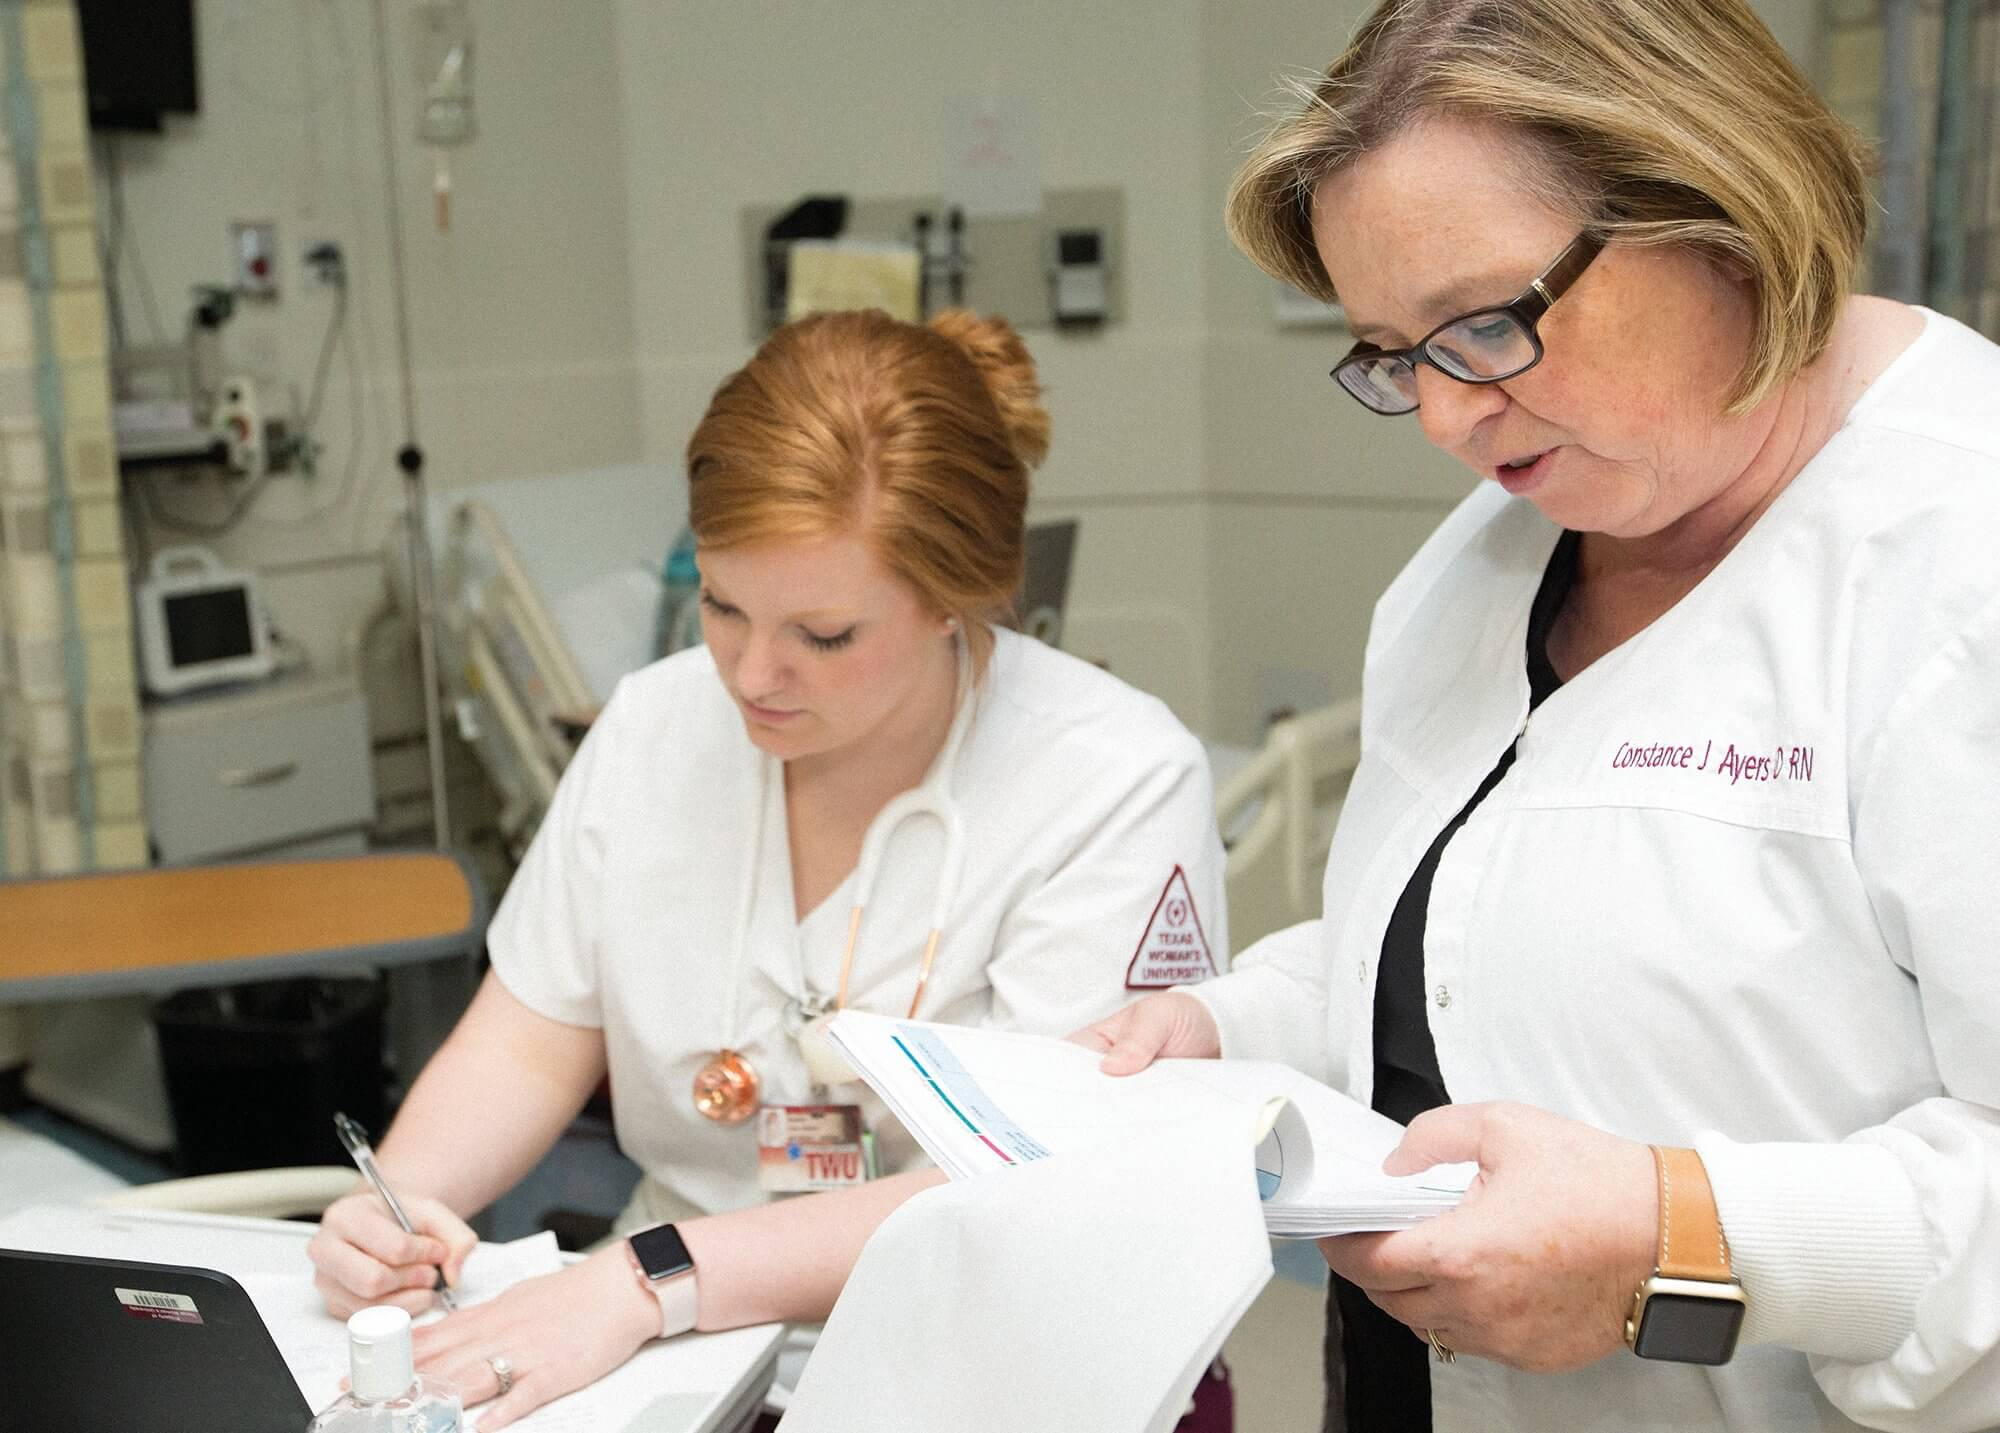 Connie Ayers, Ph.D., RN, who helped develop the program, consults with a student.